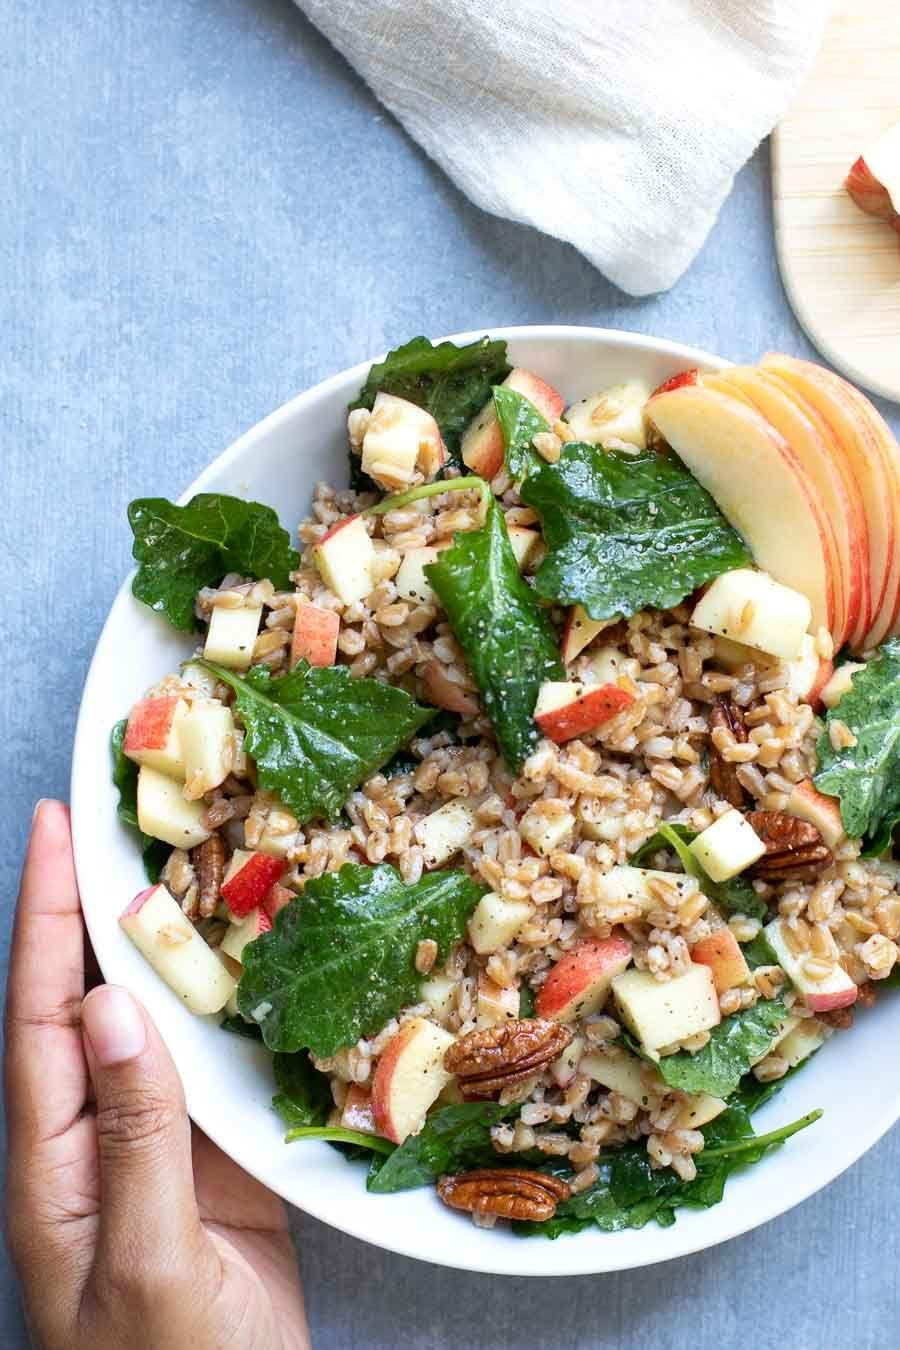 """<p>Farro is an ancient grain that's chewy, nutty, and perfect for adding heft to any salad. It cooks just like pasta in a pot of boiling water and can easily be made ahead to add to your salad. </p><p><strong>Get the recipe at <a href=""""https://marisamoore.com/apple-pecan-farro-salad/"""" rel=""""nofollow noopener"""" target=""""_blank"""" data-ylk=""""slk:Marisa Moore"""" class=""""link rapid-noclick-resp"""">Marisa Moore</a>. </strong></p><p><a class=""""link rapid-noclick-resp"""" href=""""https://go.redirectingat.com?id=74968X1596630&url=https%3A%2F%2Fwww.walmart.com%2Fsearch%2F%3Fquery%3Dstock%2Bpots&sref=https%3A%2F%2Fwww.thepioneerwoman.com%2Ffood-cooking%2Fmeals-menus%2Fg36806222%2Ffall-salad-recipes%2F"""" rel=""""nofollow noopener"""" target=""""_blank"""" data-ylk=""""slk:SHOP POTS"""">SHOP POTS</a></p>"""